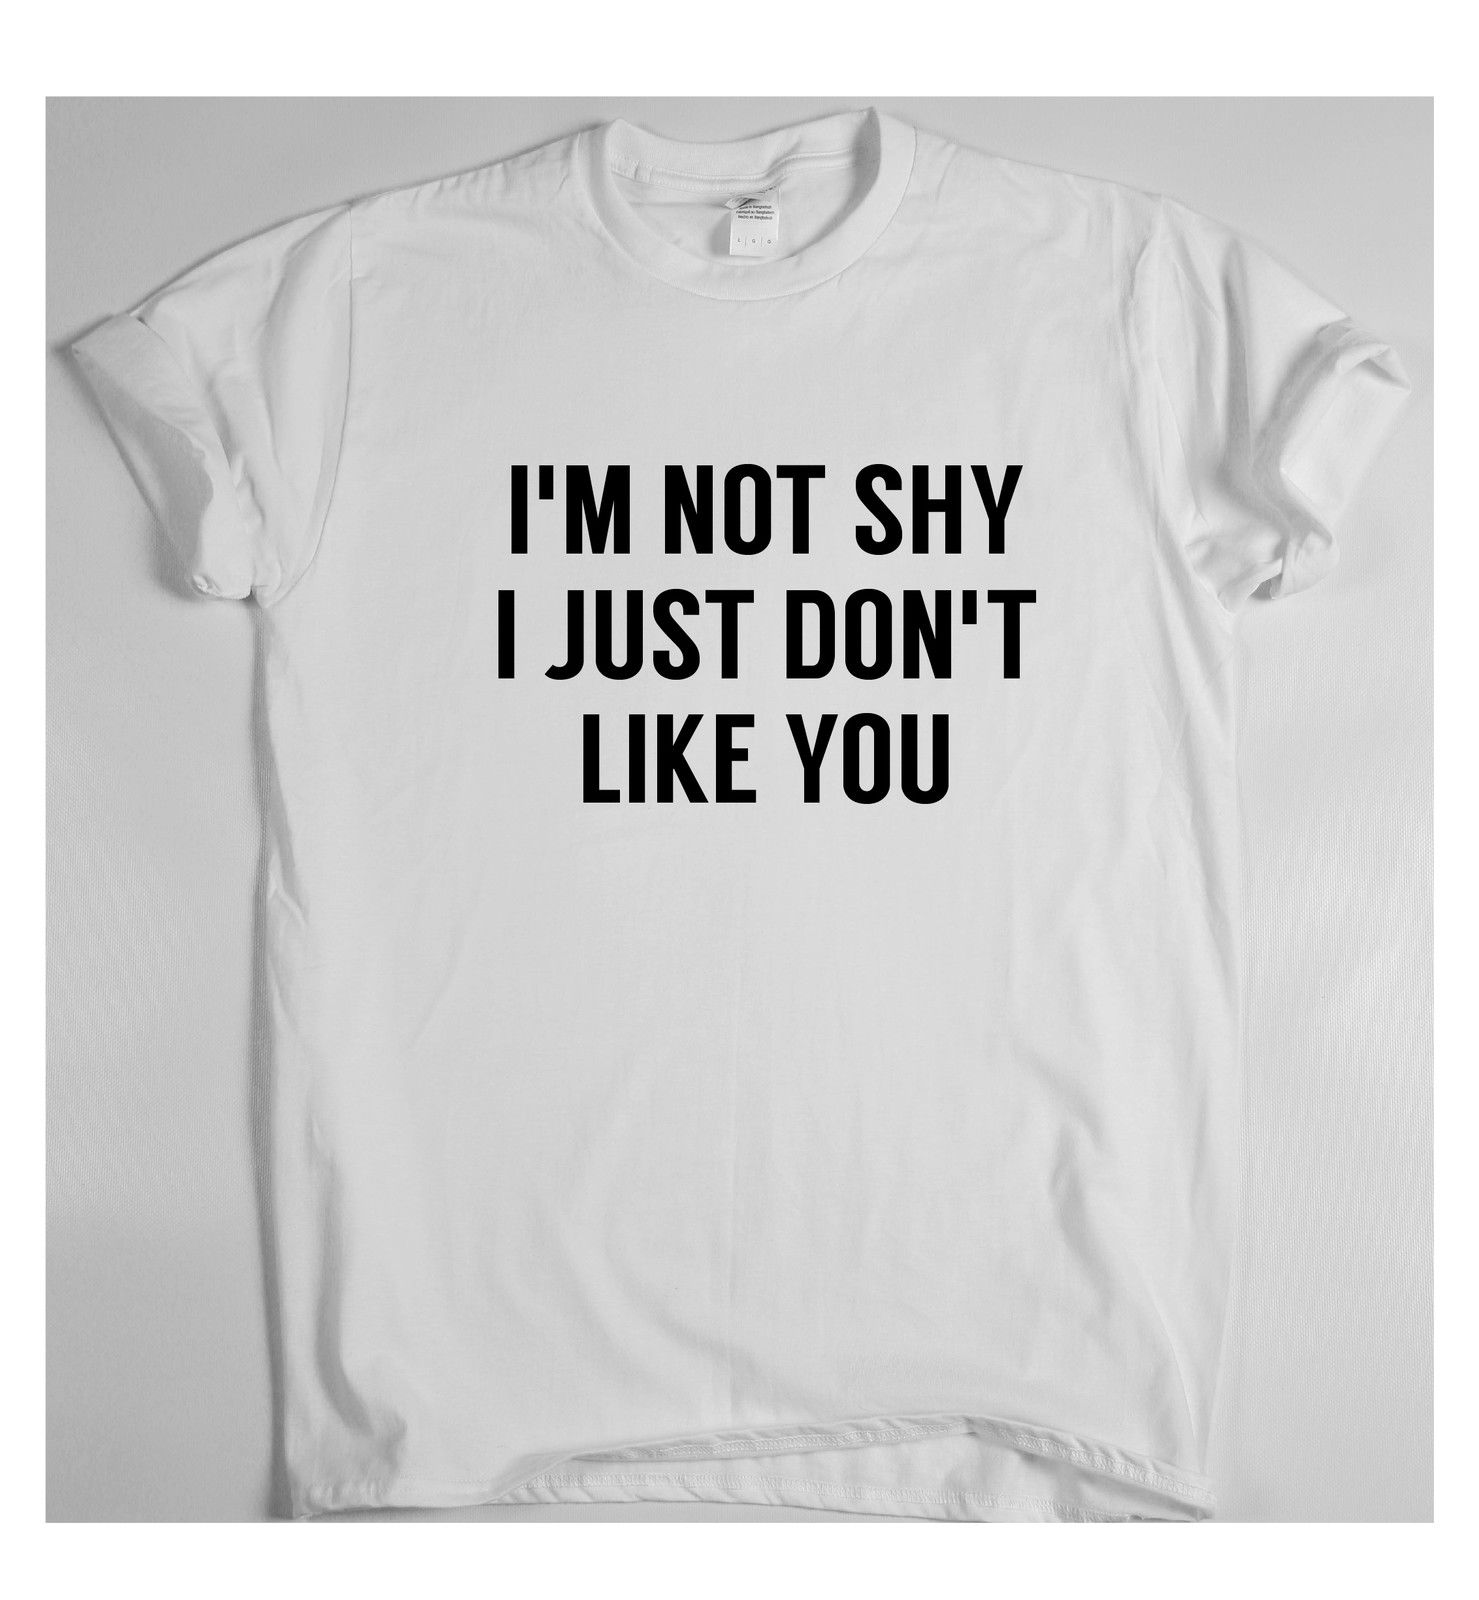 IM NOT SHY I JUST DONT LIKE YOU x funny humour t-shirt slogan men women Men T-Shirts